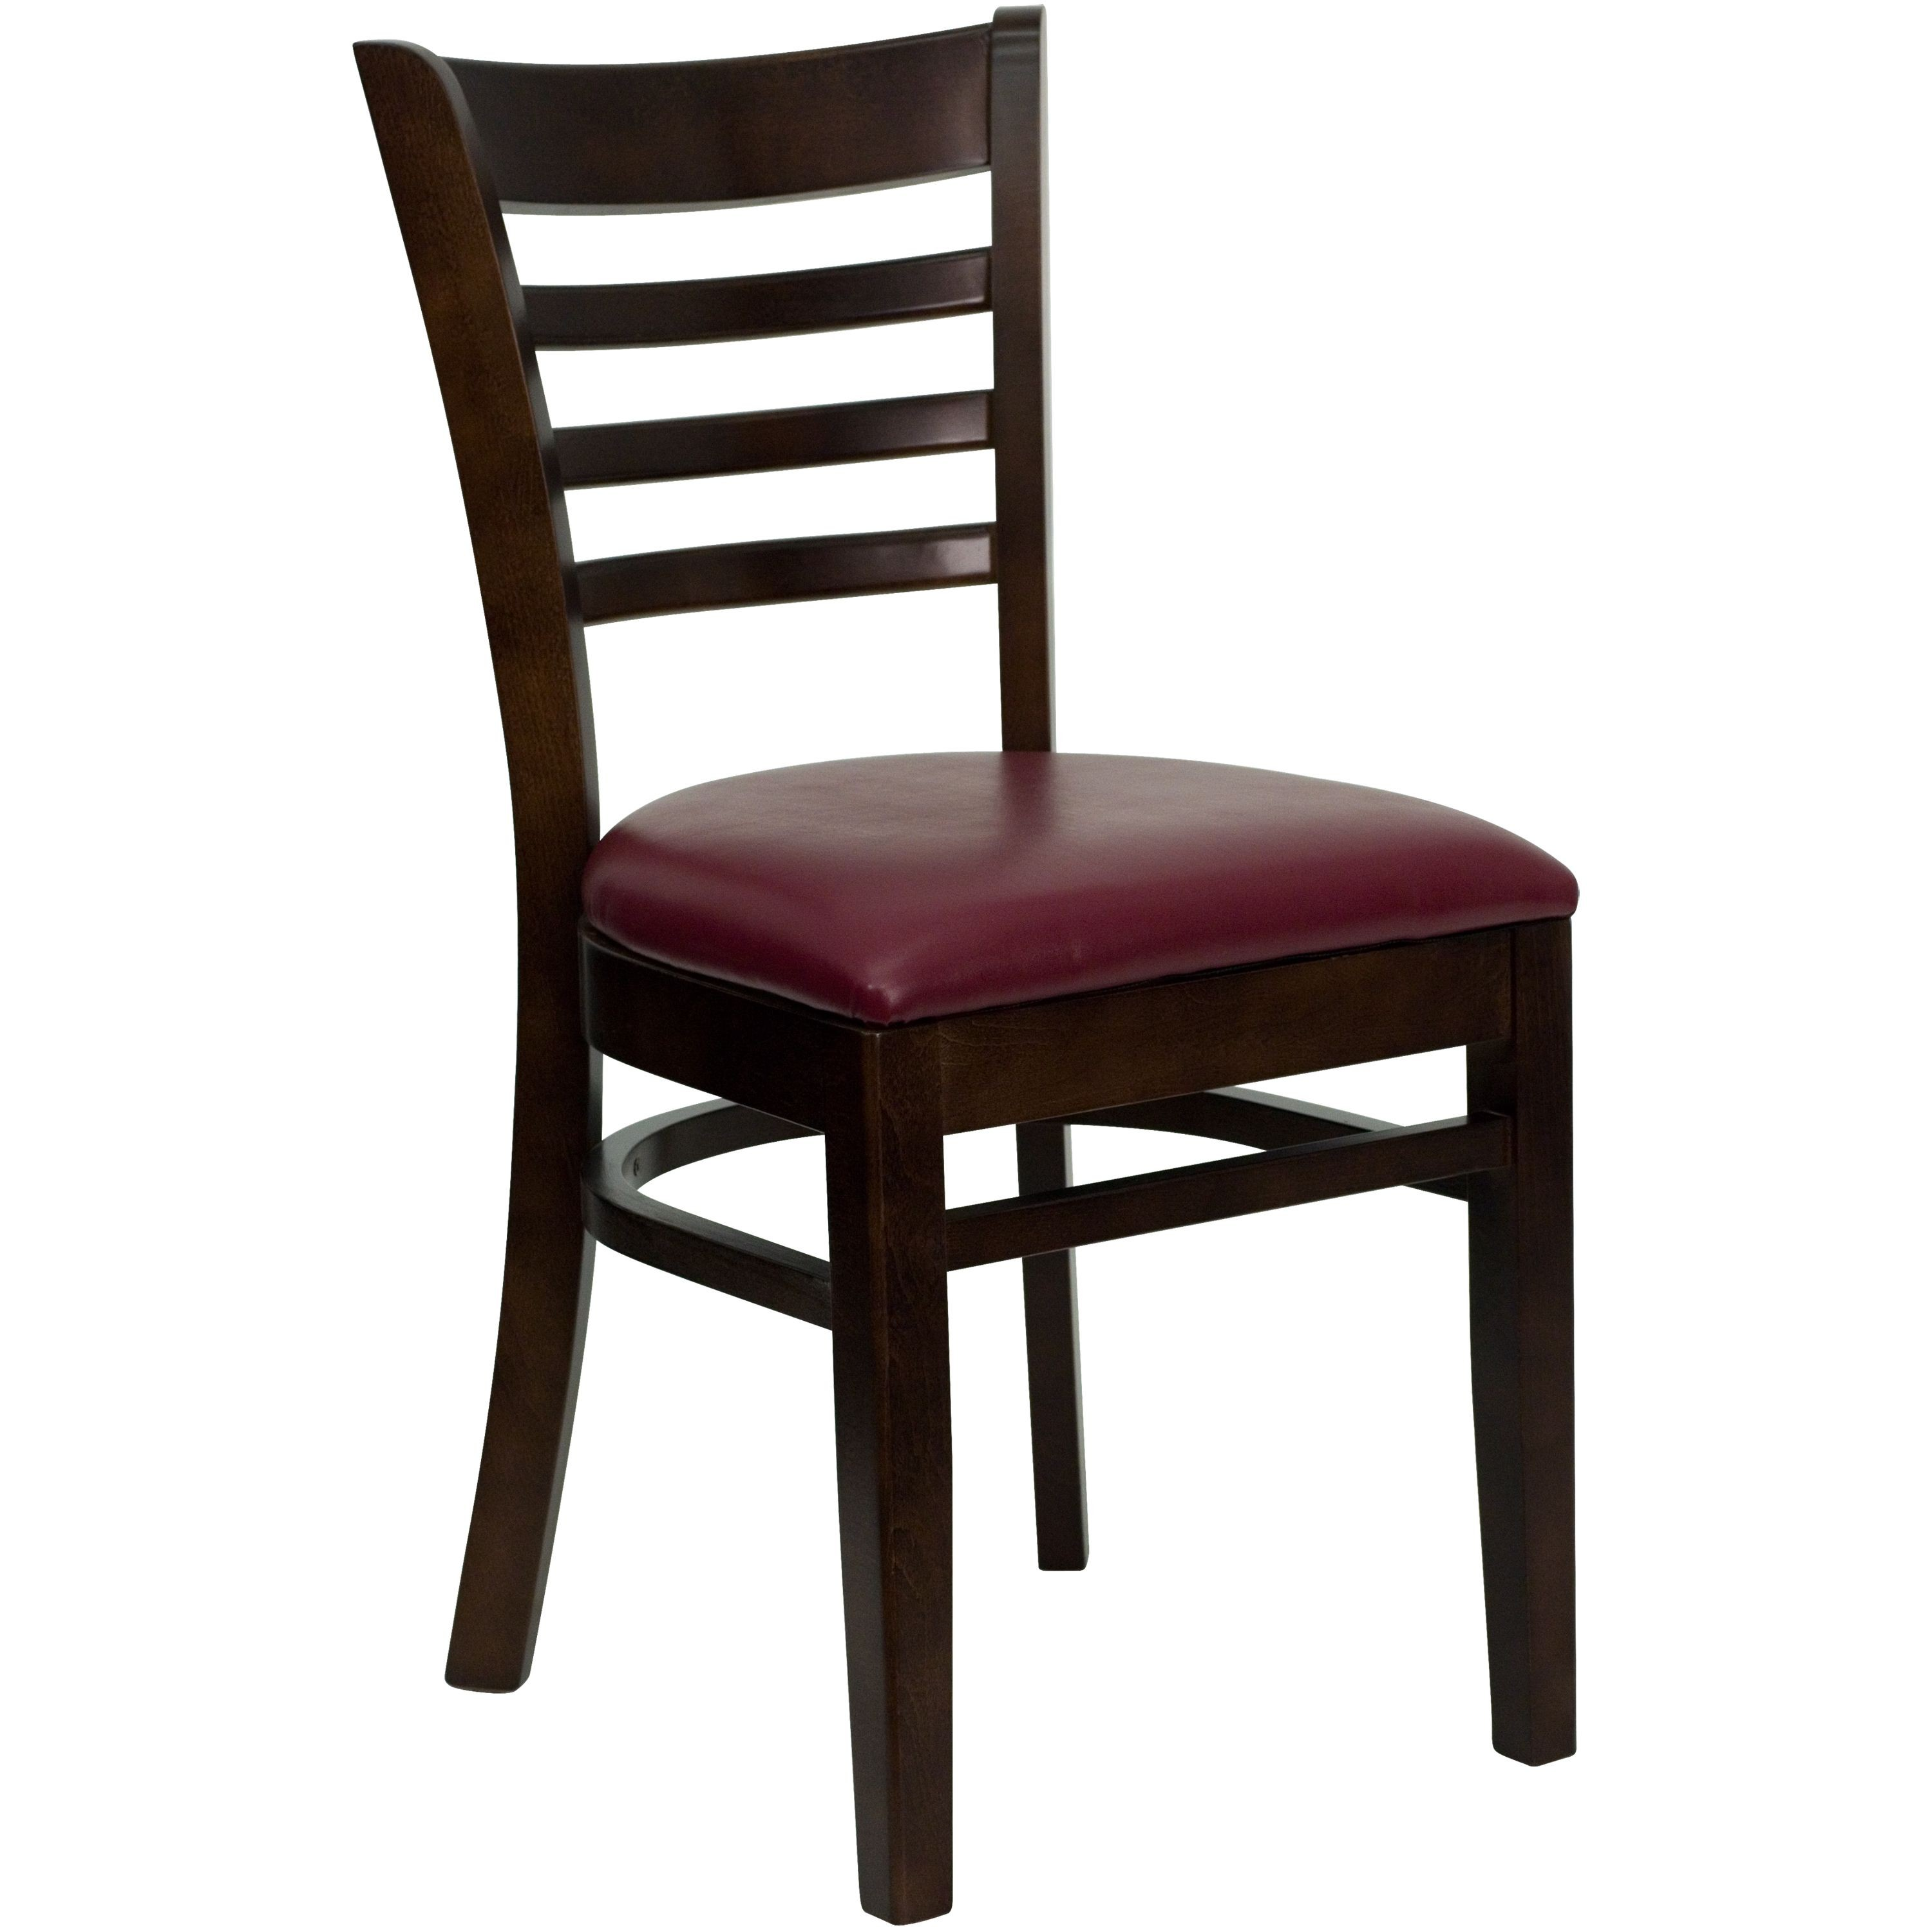 Ladder Back Walnut Wood Chair with Burgundy Vinyl Seat